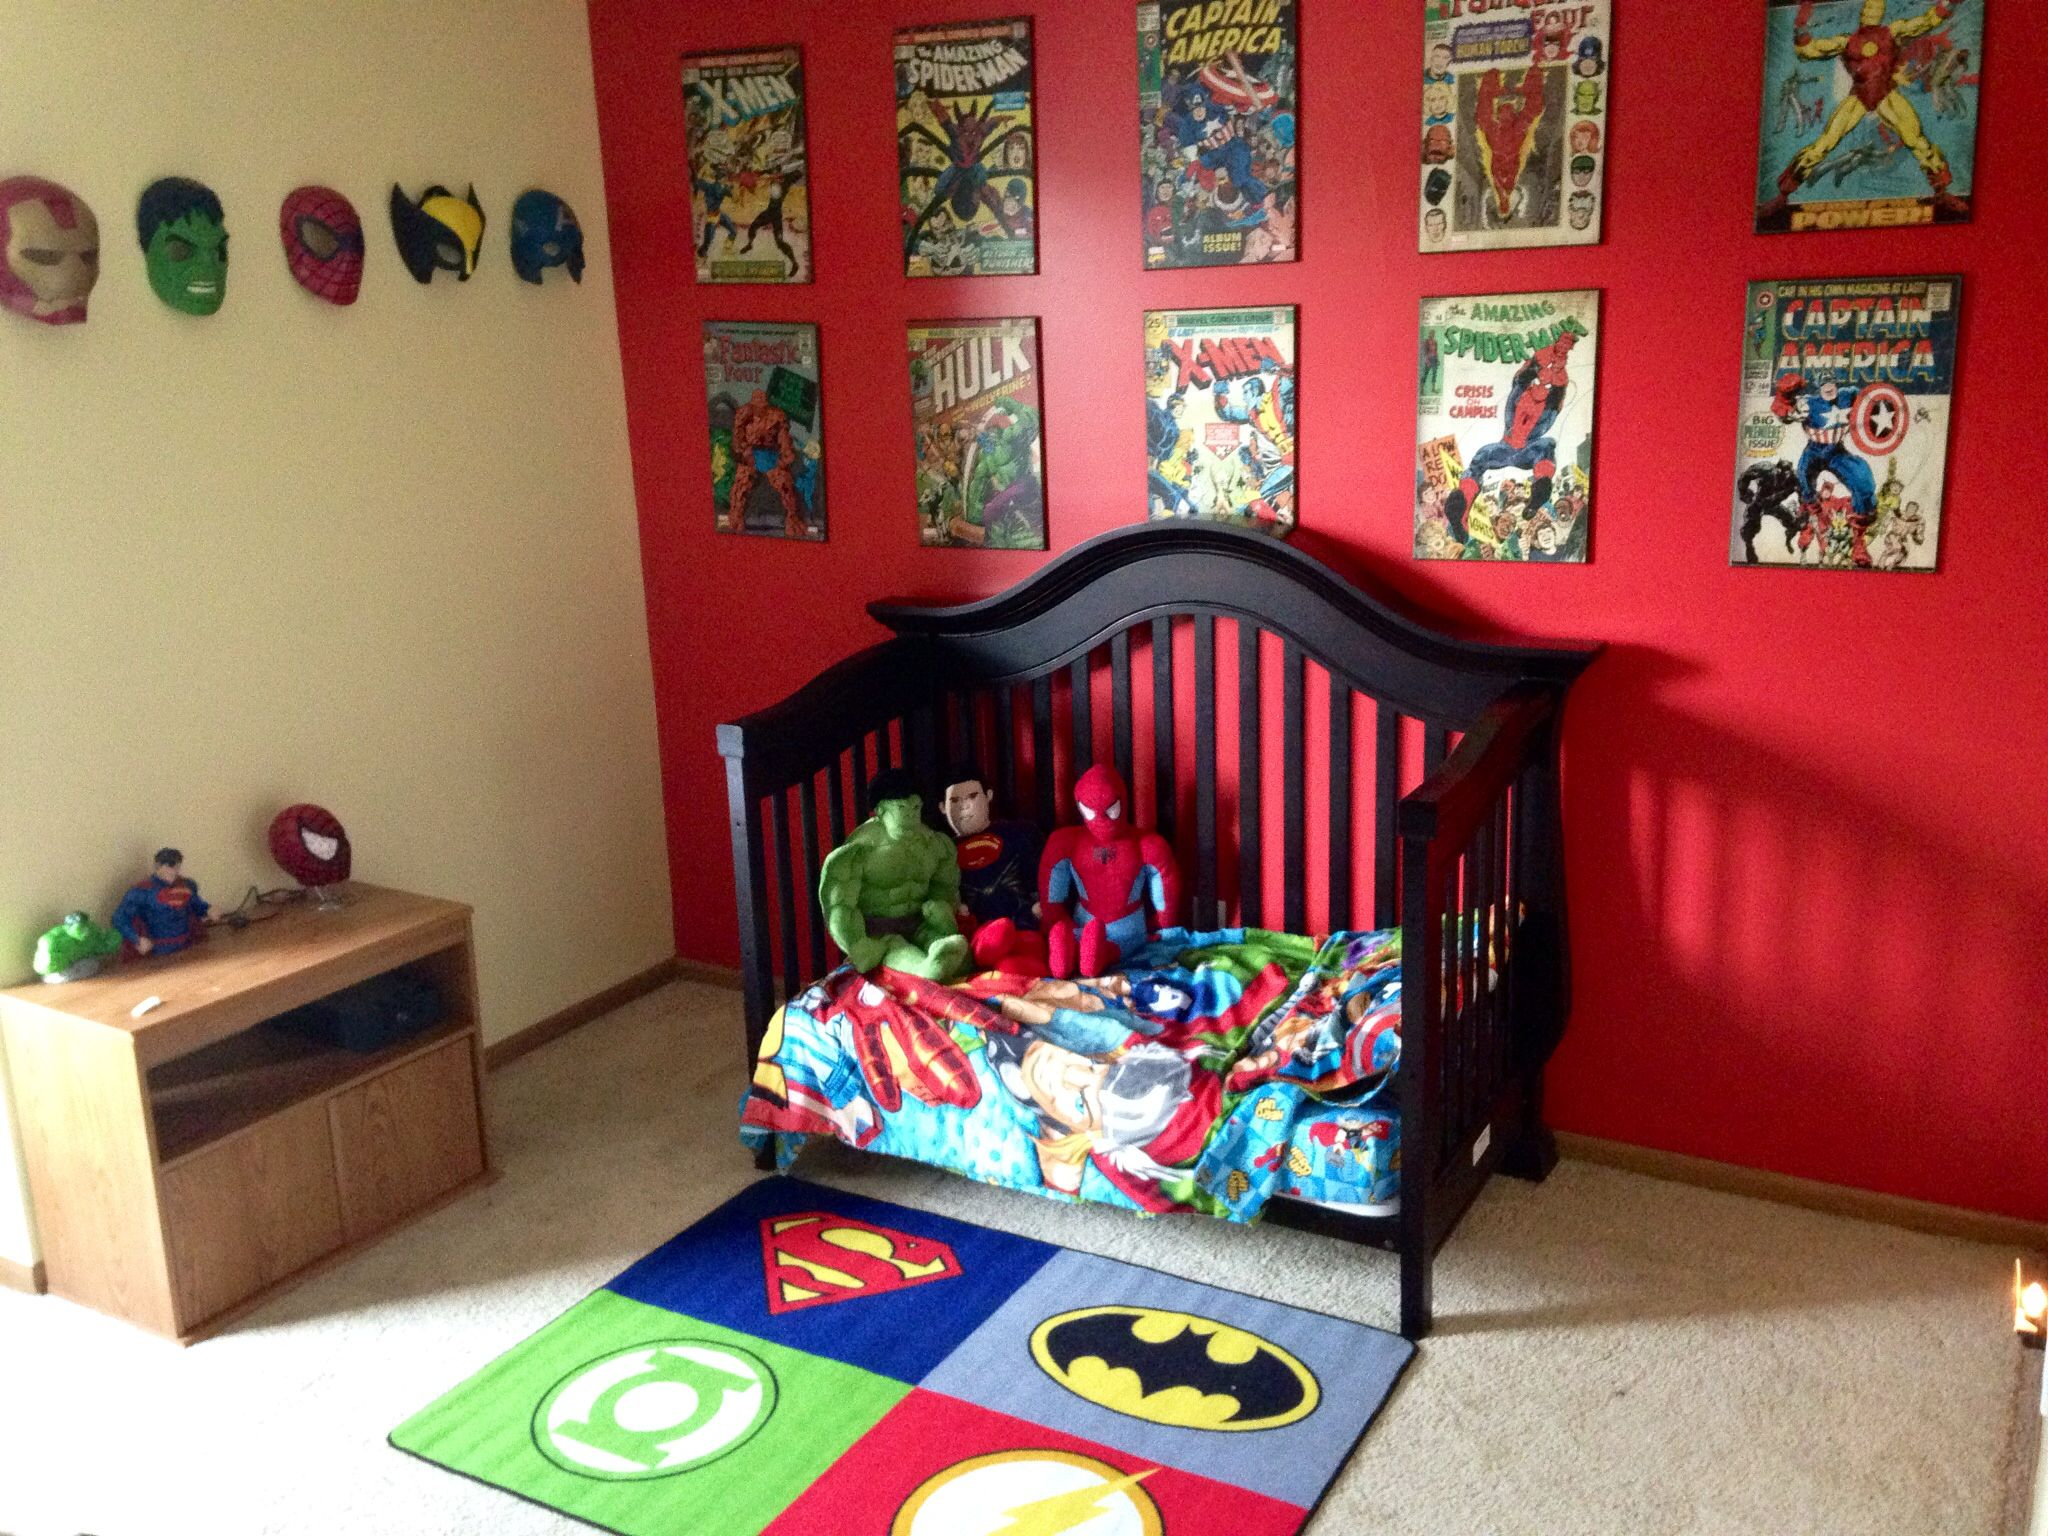 bedrooms room medium adorable com bedroom ideas decor themed size book hero superhero marvel comics home boys super dc comic of